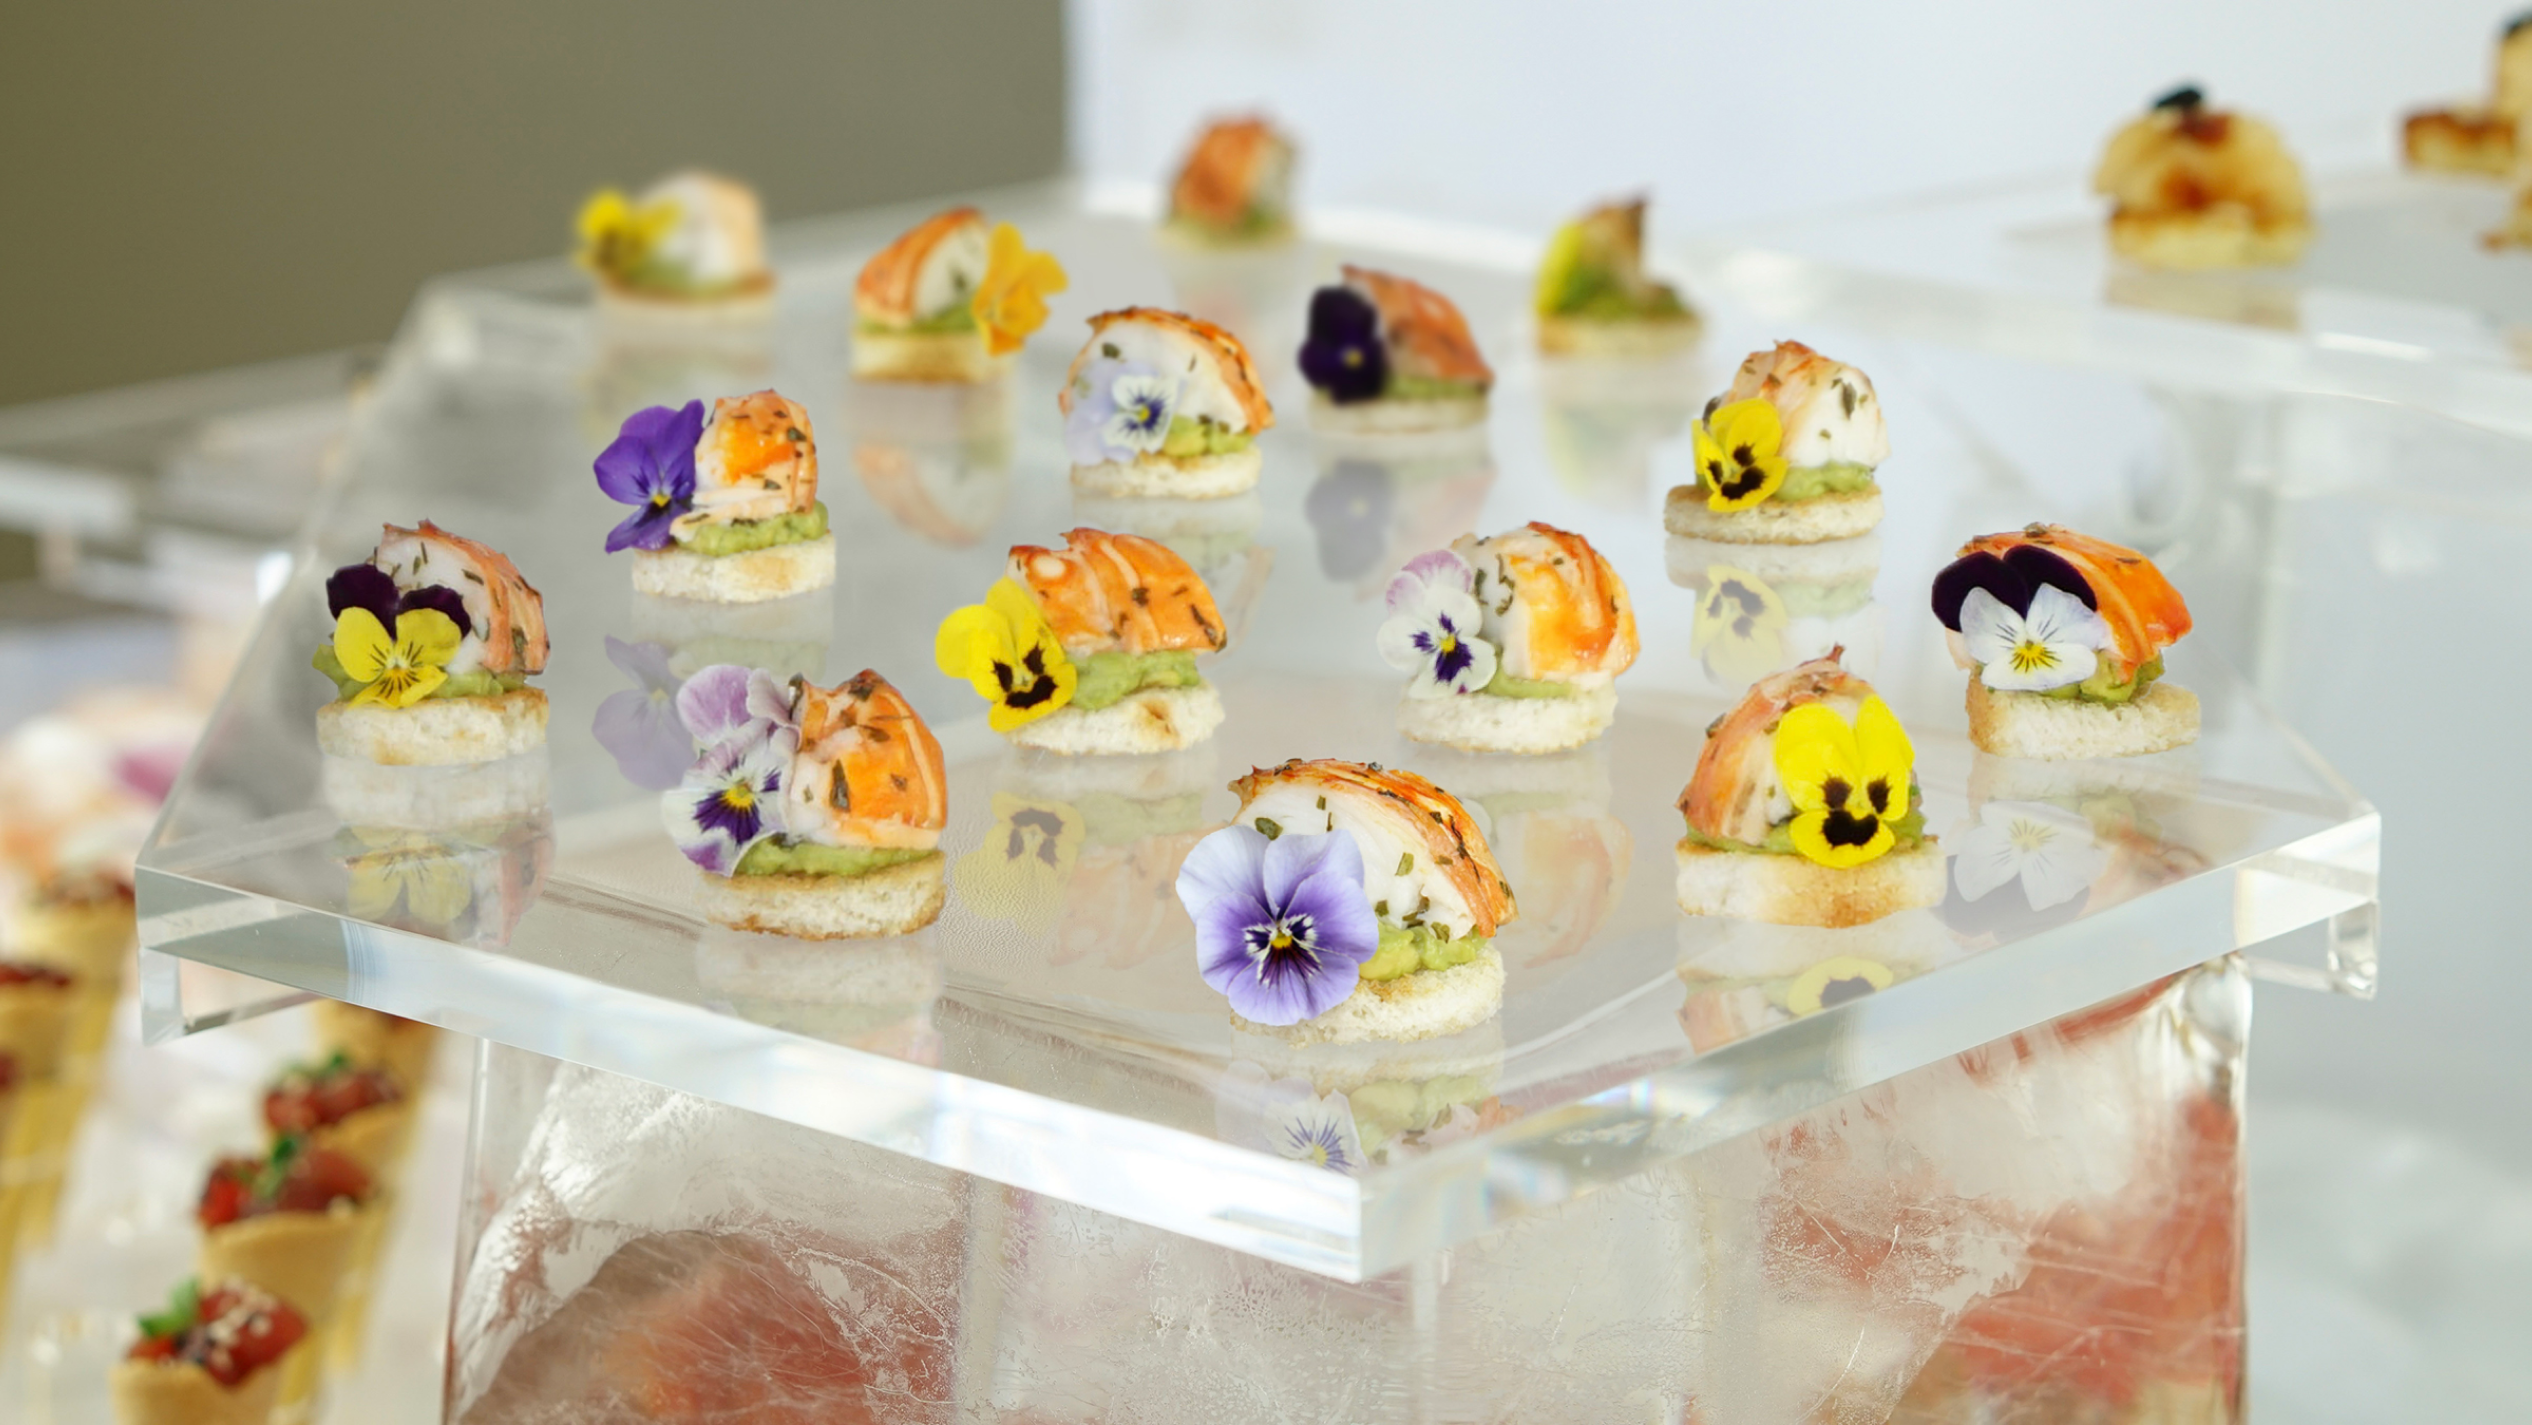 Lobster and avocado toasts with edible flowers